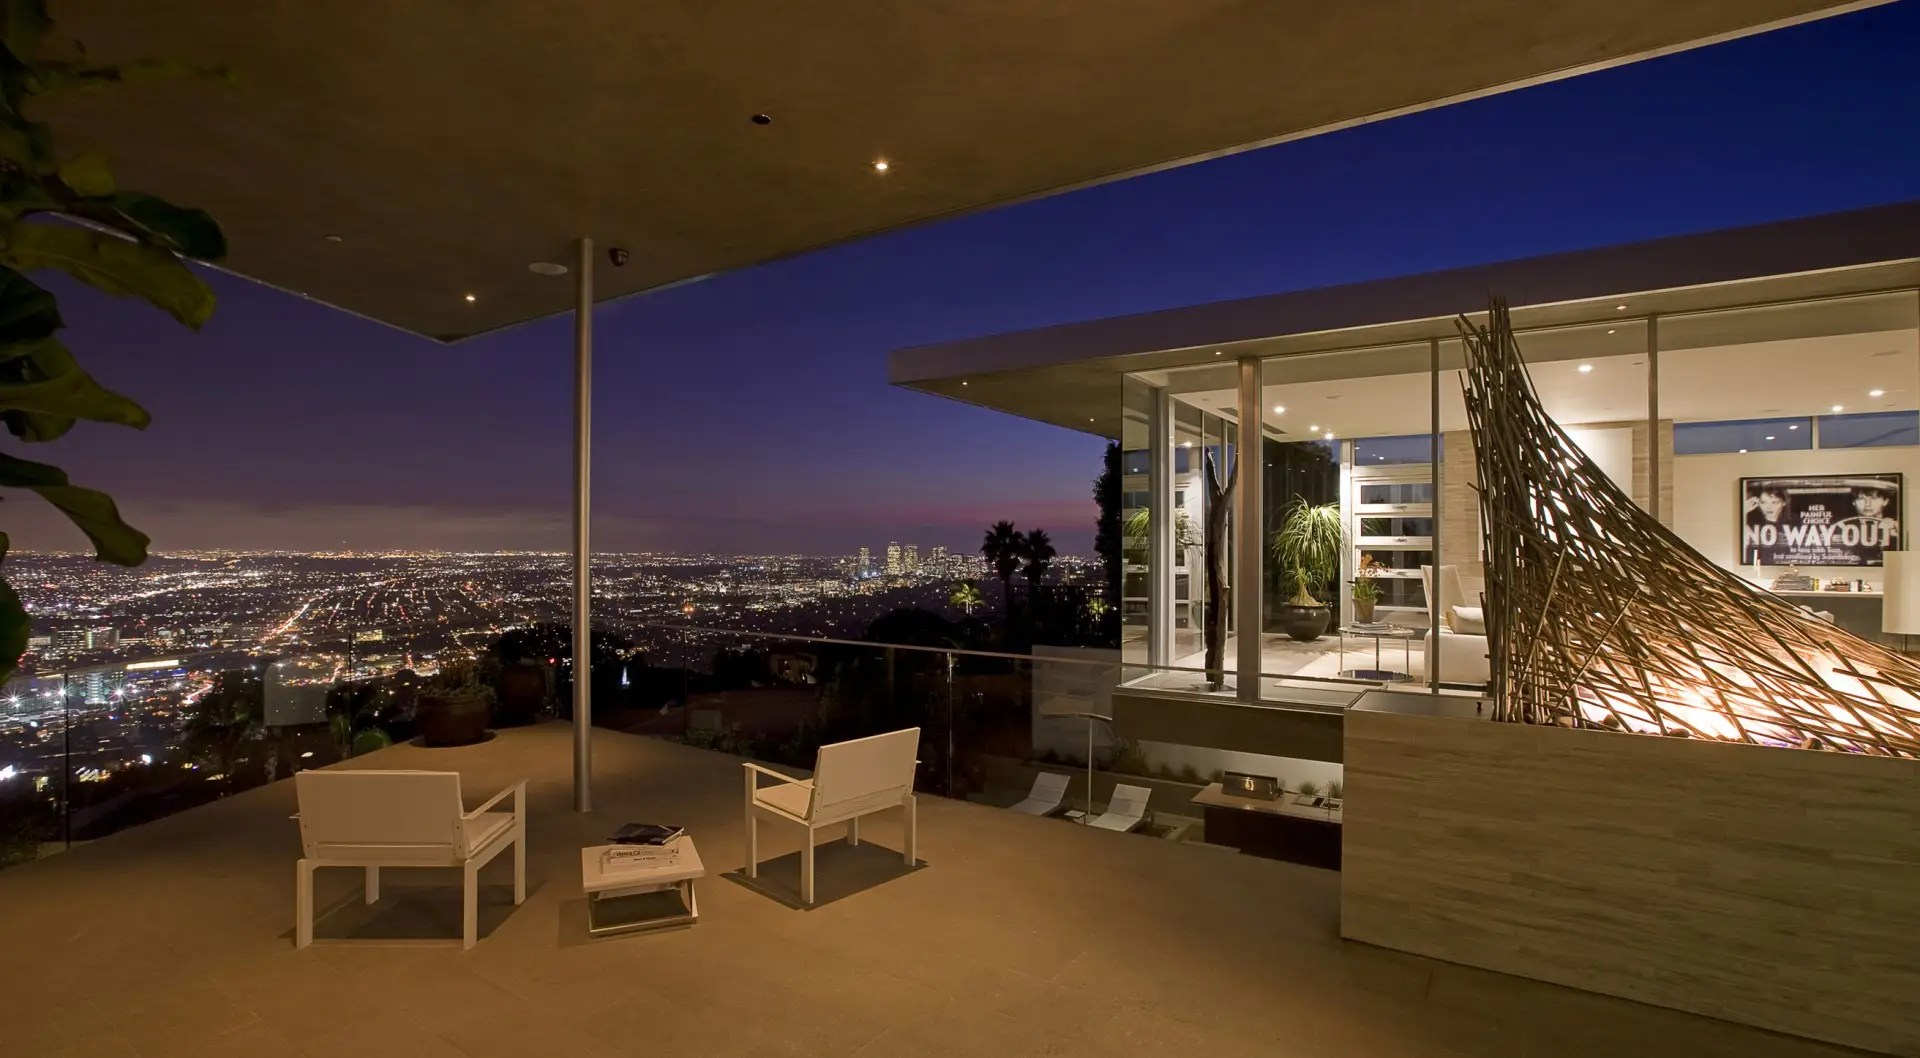 At night, the back patio is a great space for entertaining.